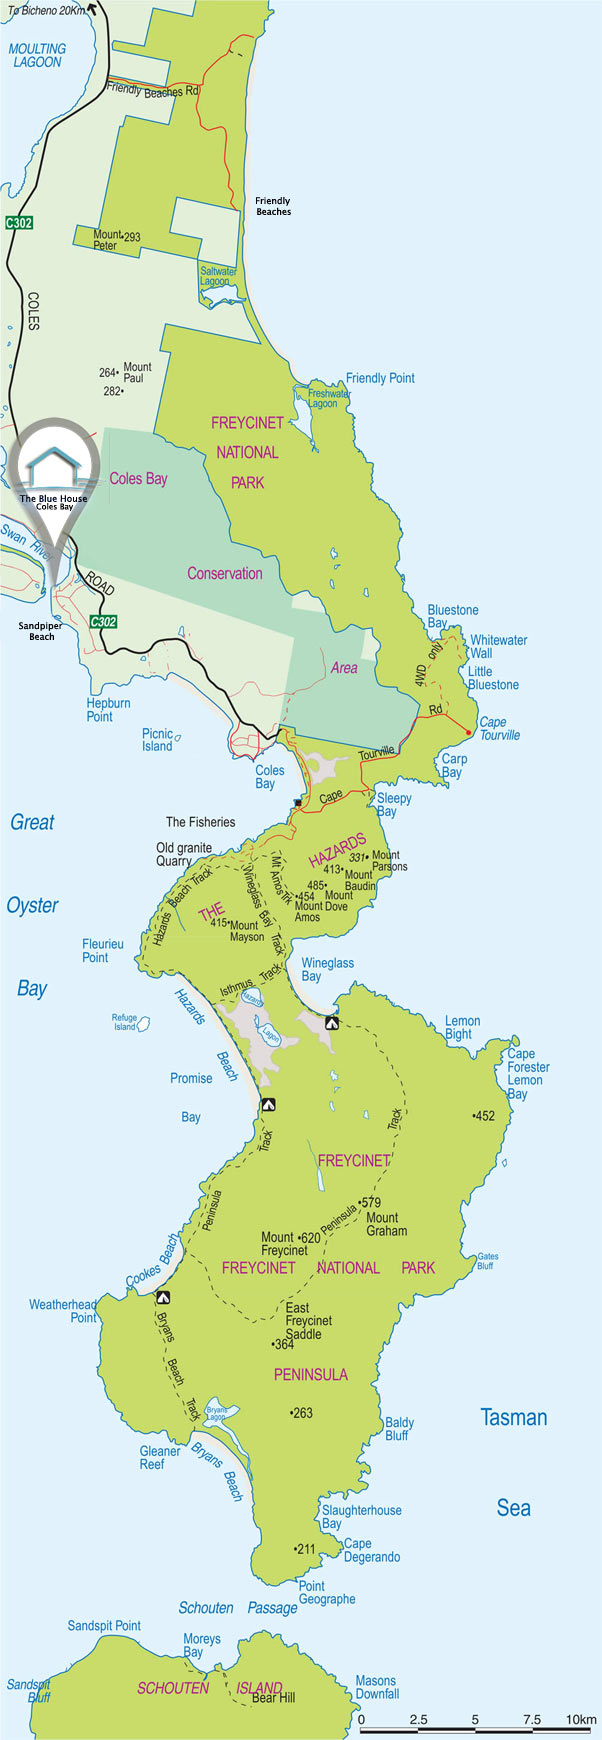 Full map of the Freycinet National Park